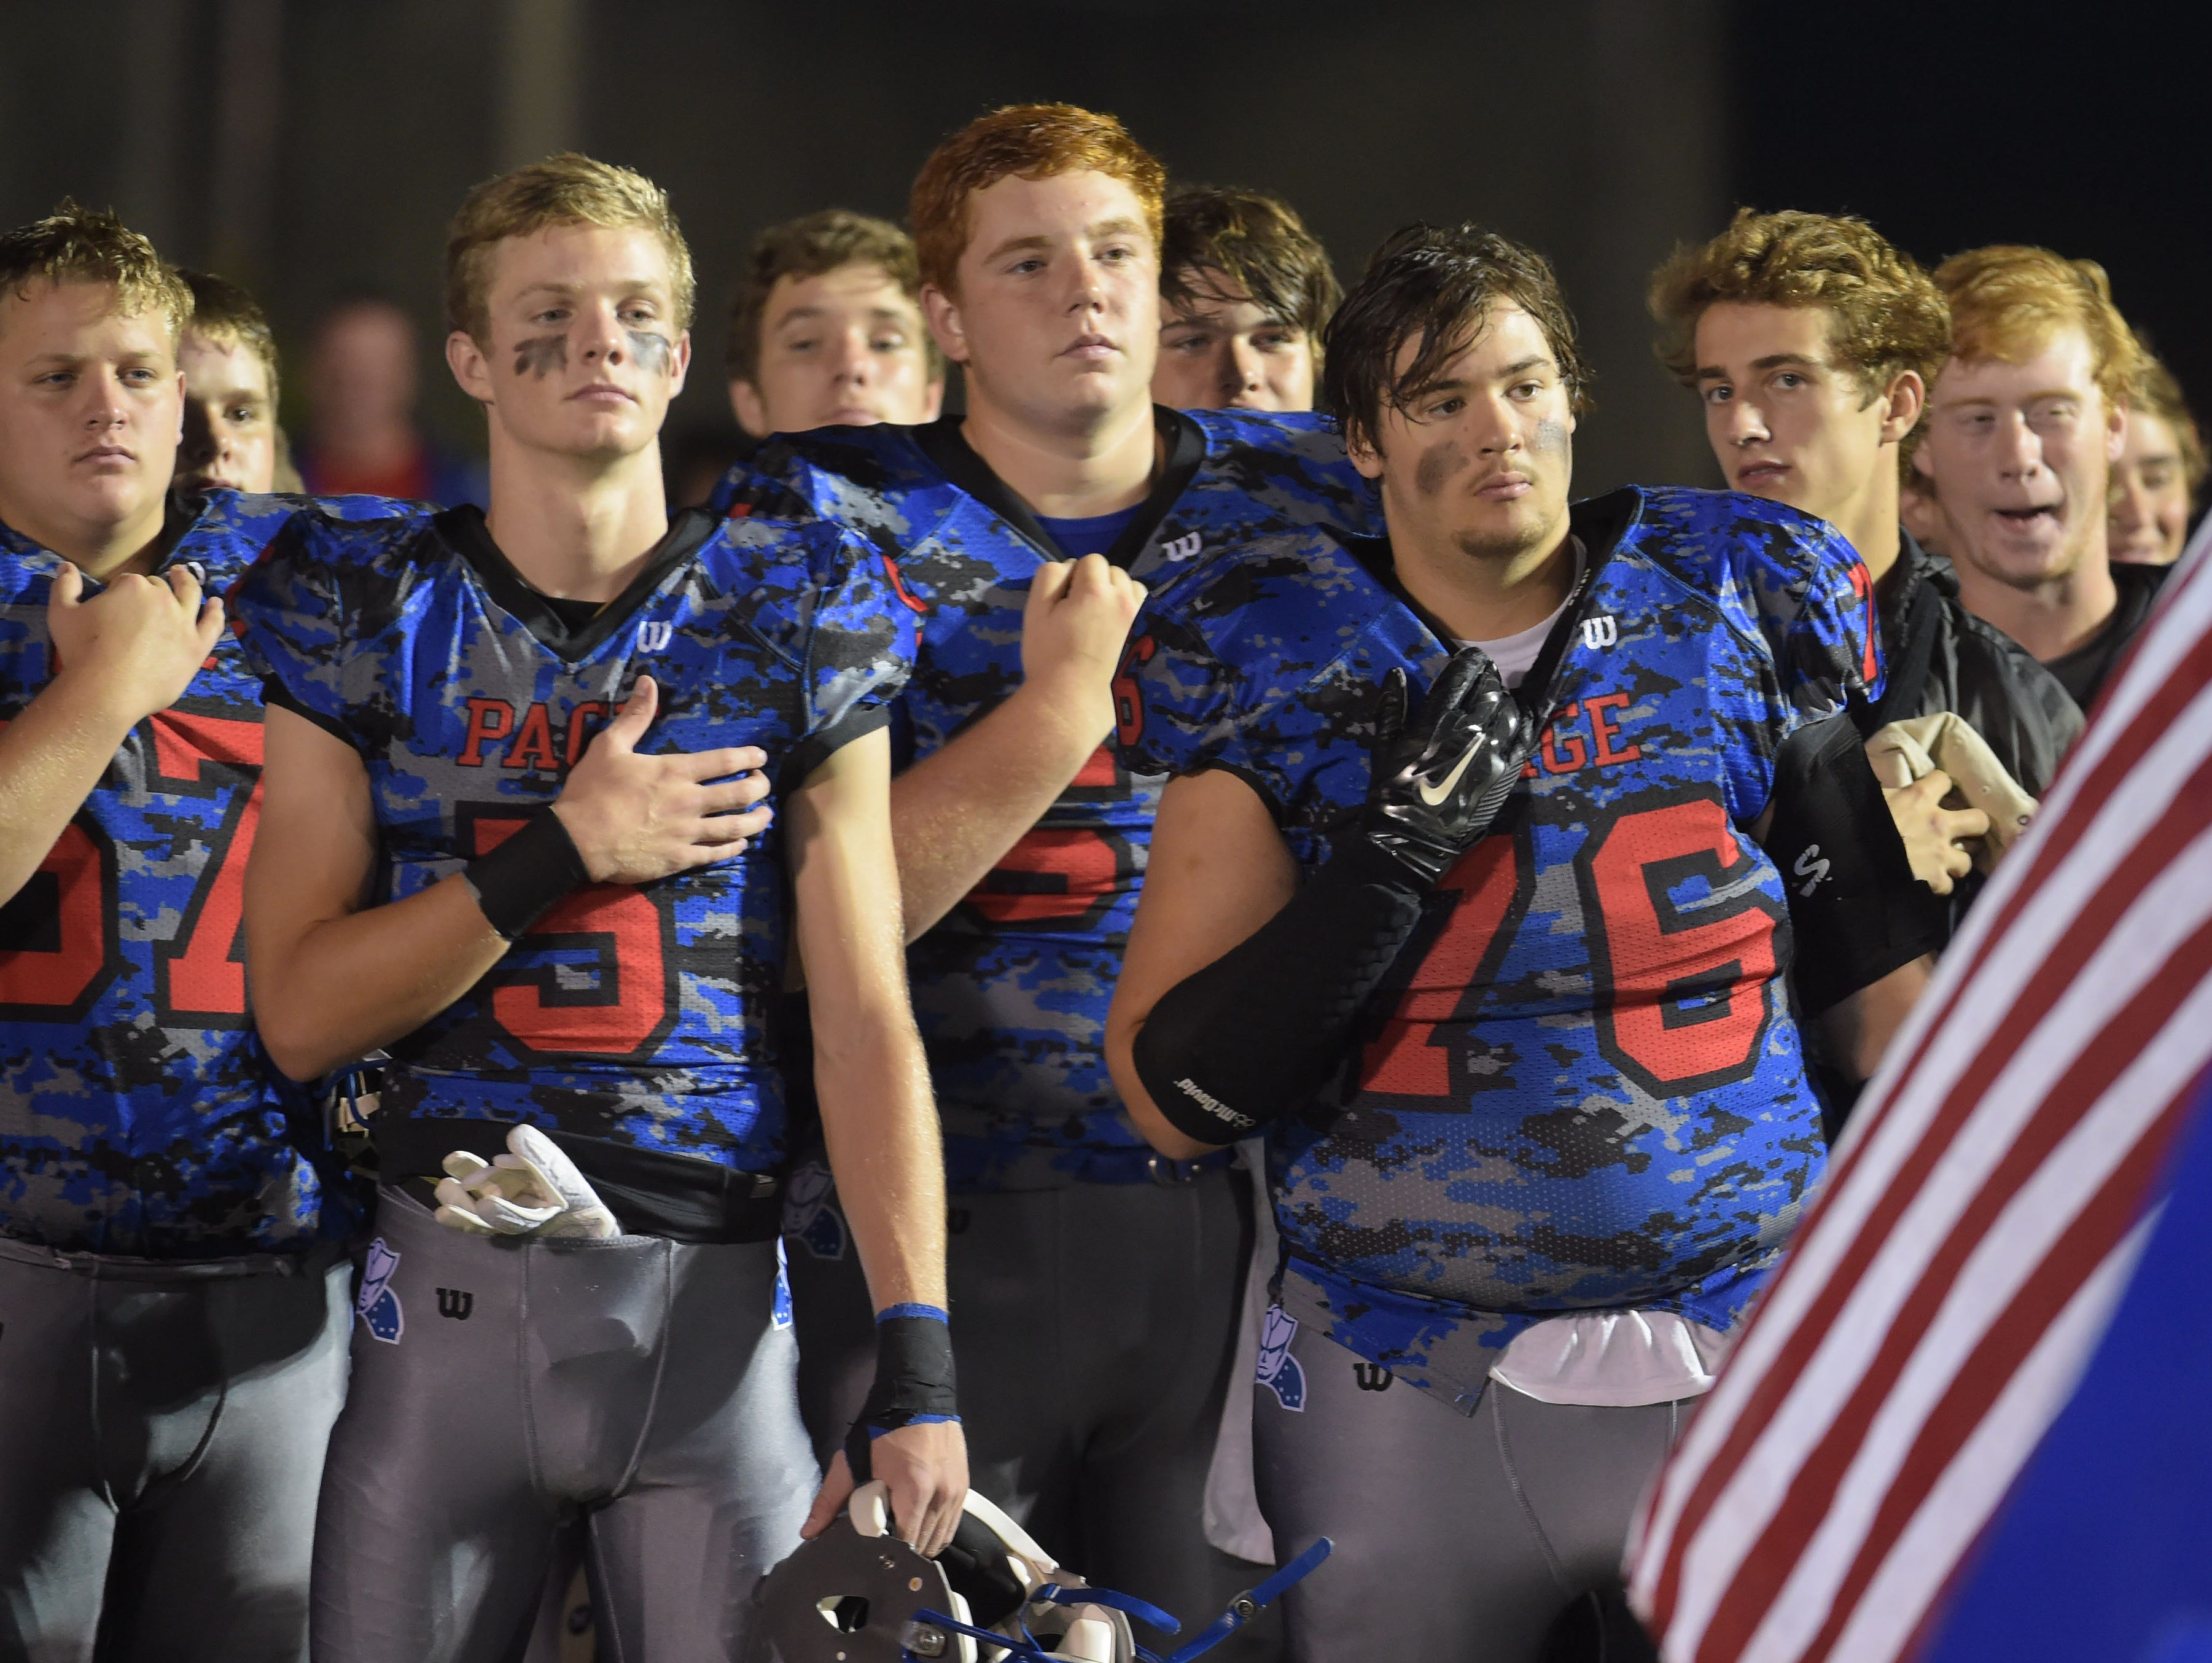 Page High School football players say the Pledge at Page High School on Friday Sept. 25, 2015, in Franklin in Tenn.